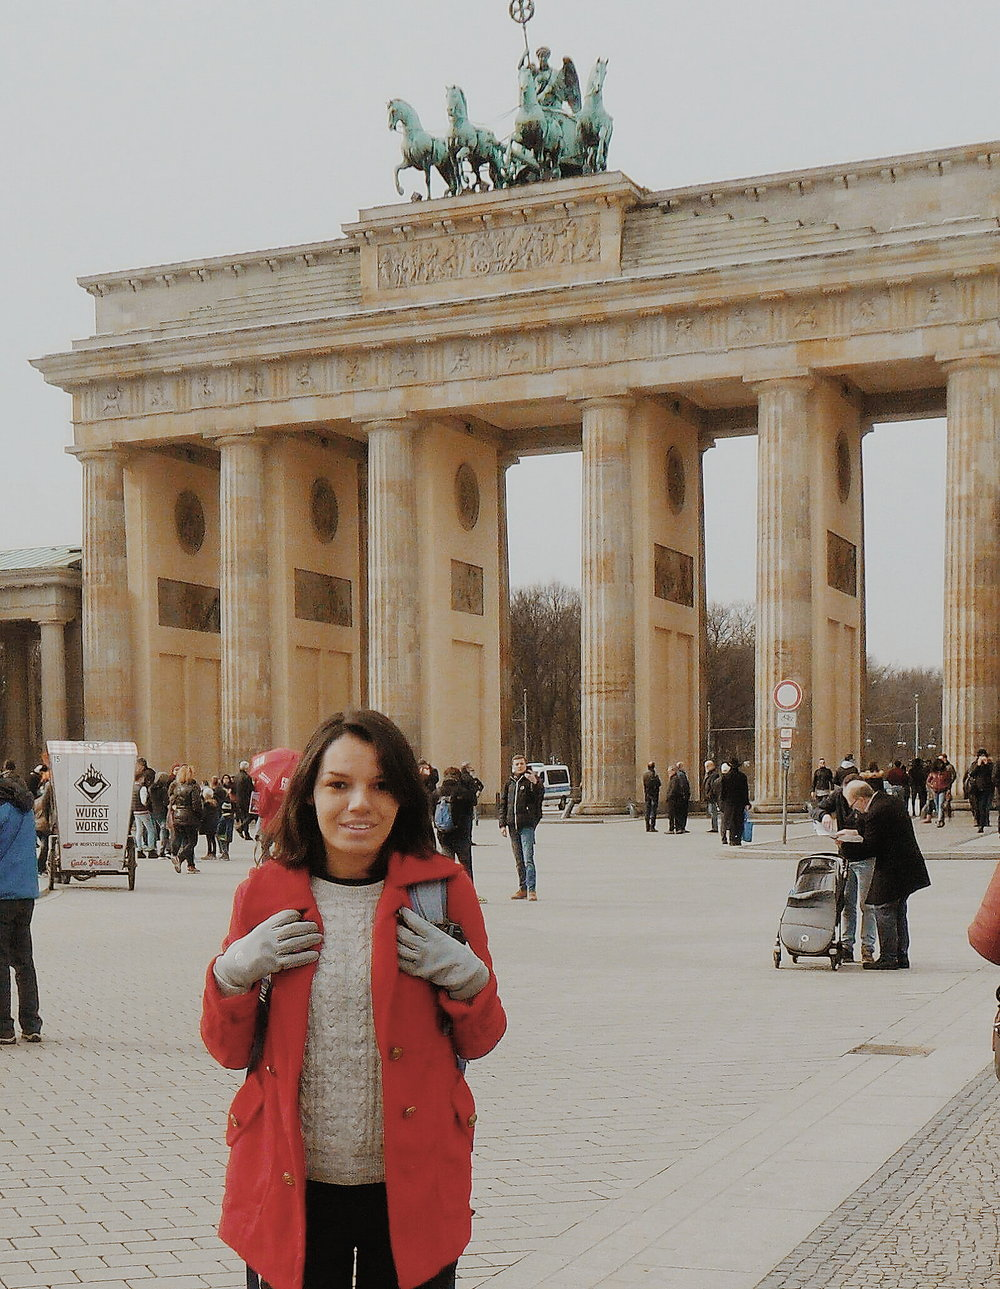 Jackie Arruda in Berlin, Germany. Photo by Jackie Arruda.